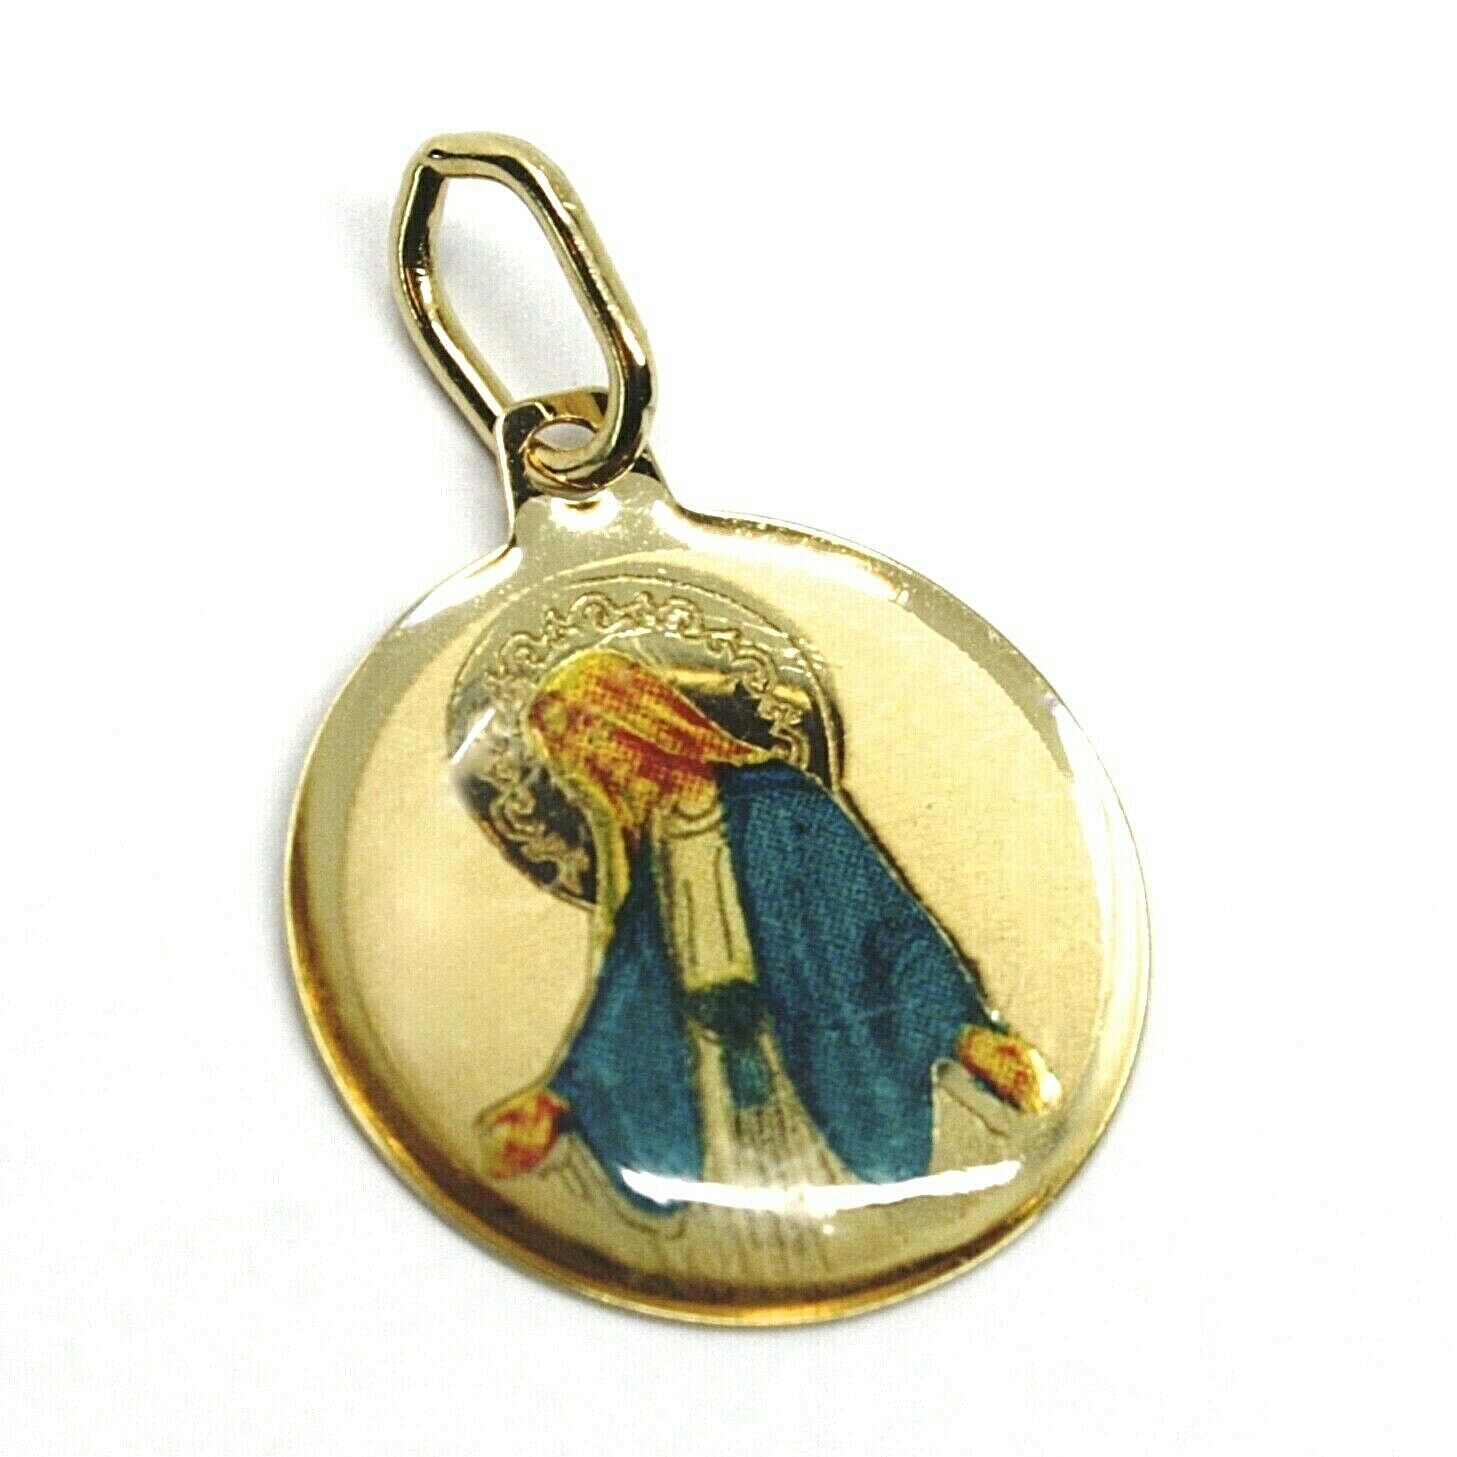 Primary image for SOLID 18K YELLOW ROUND GOLD MEDAL, VIRGIN MARY 15mm, MIRACULOUS, ENAMEL